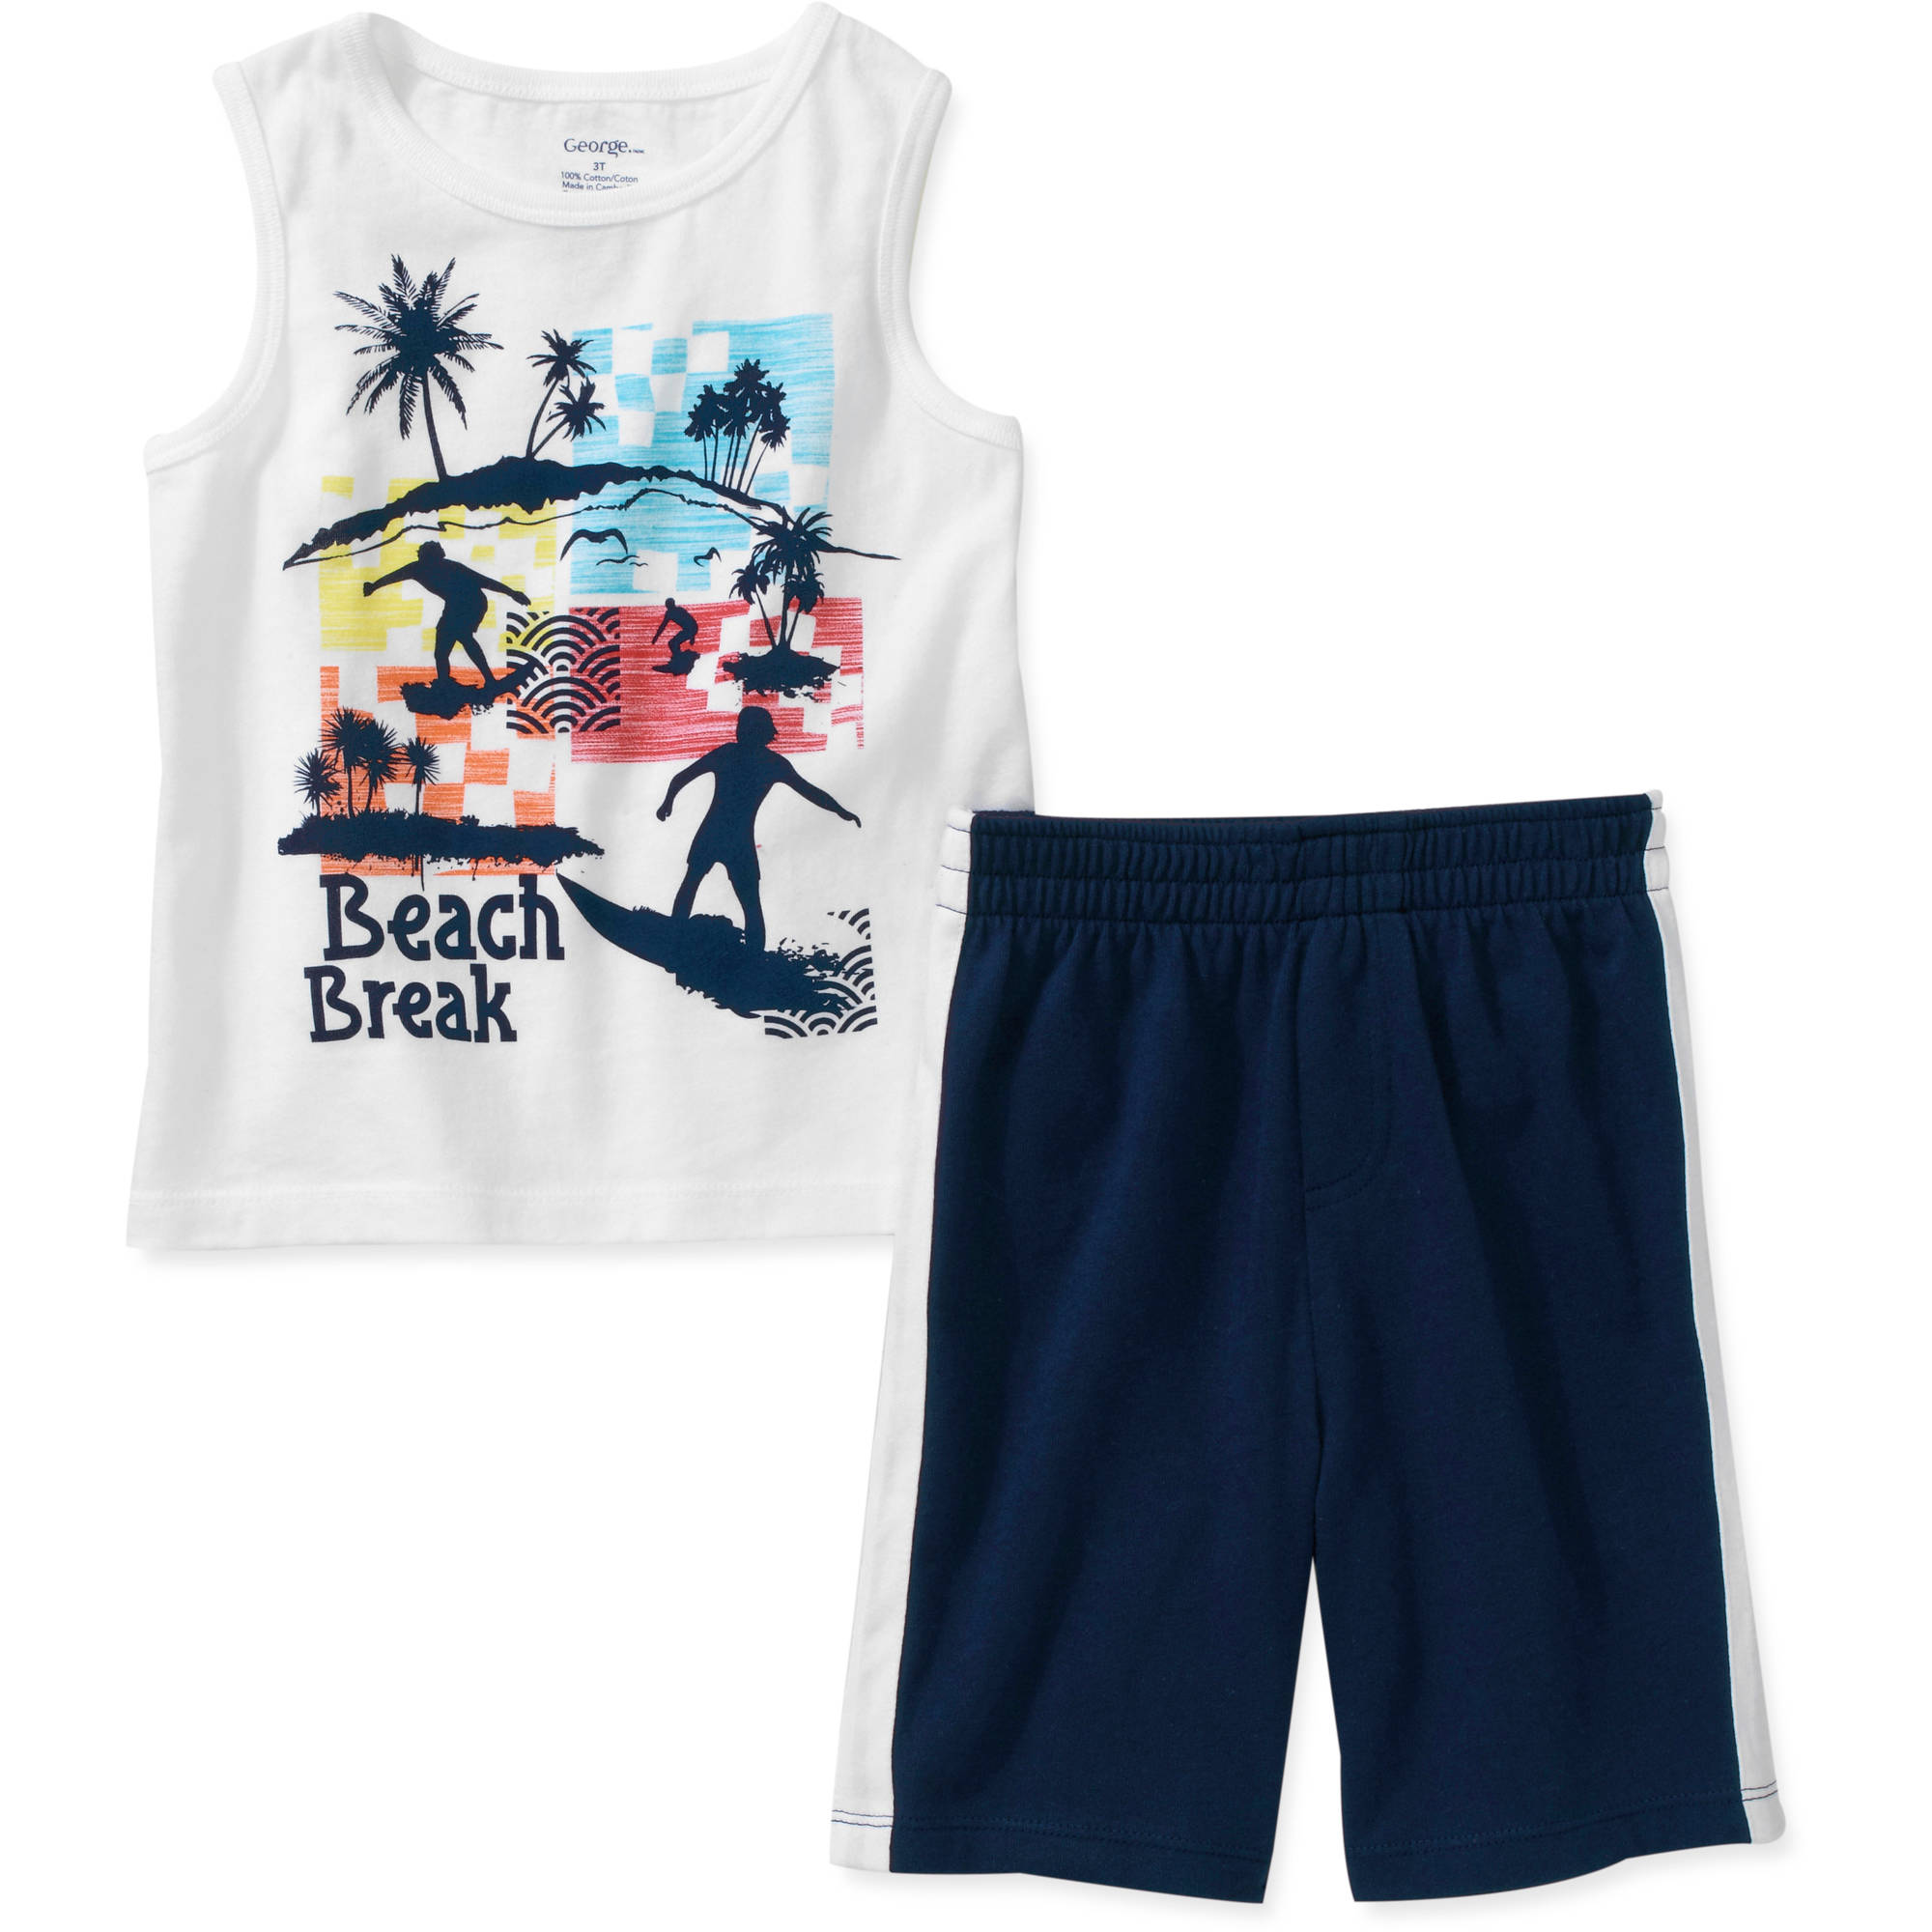 George Baby Boys' 2 Piece Graphic Tank and Short Set